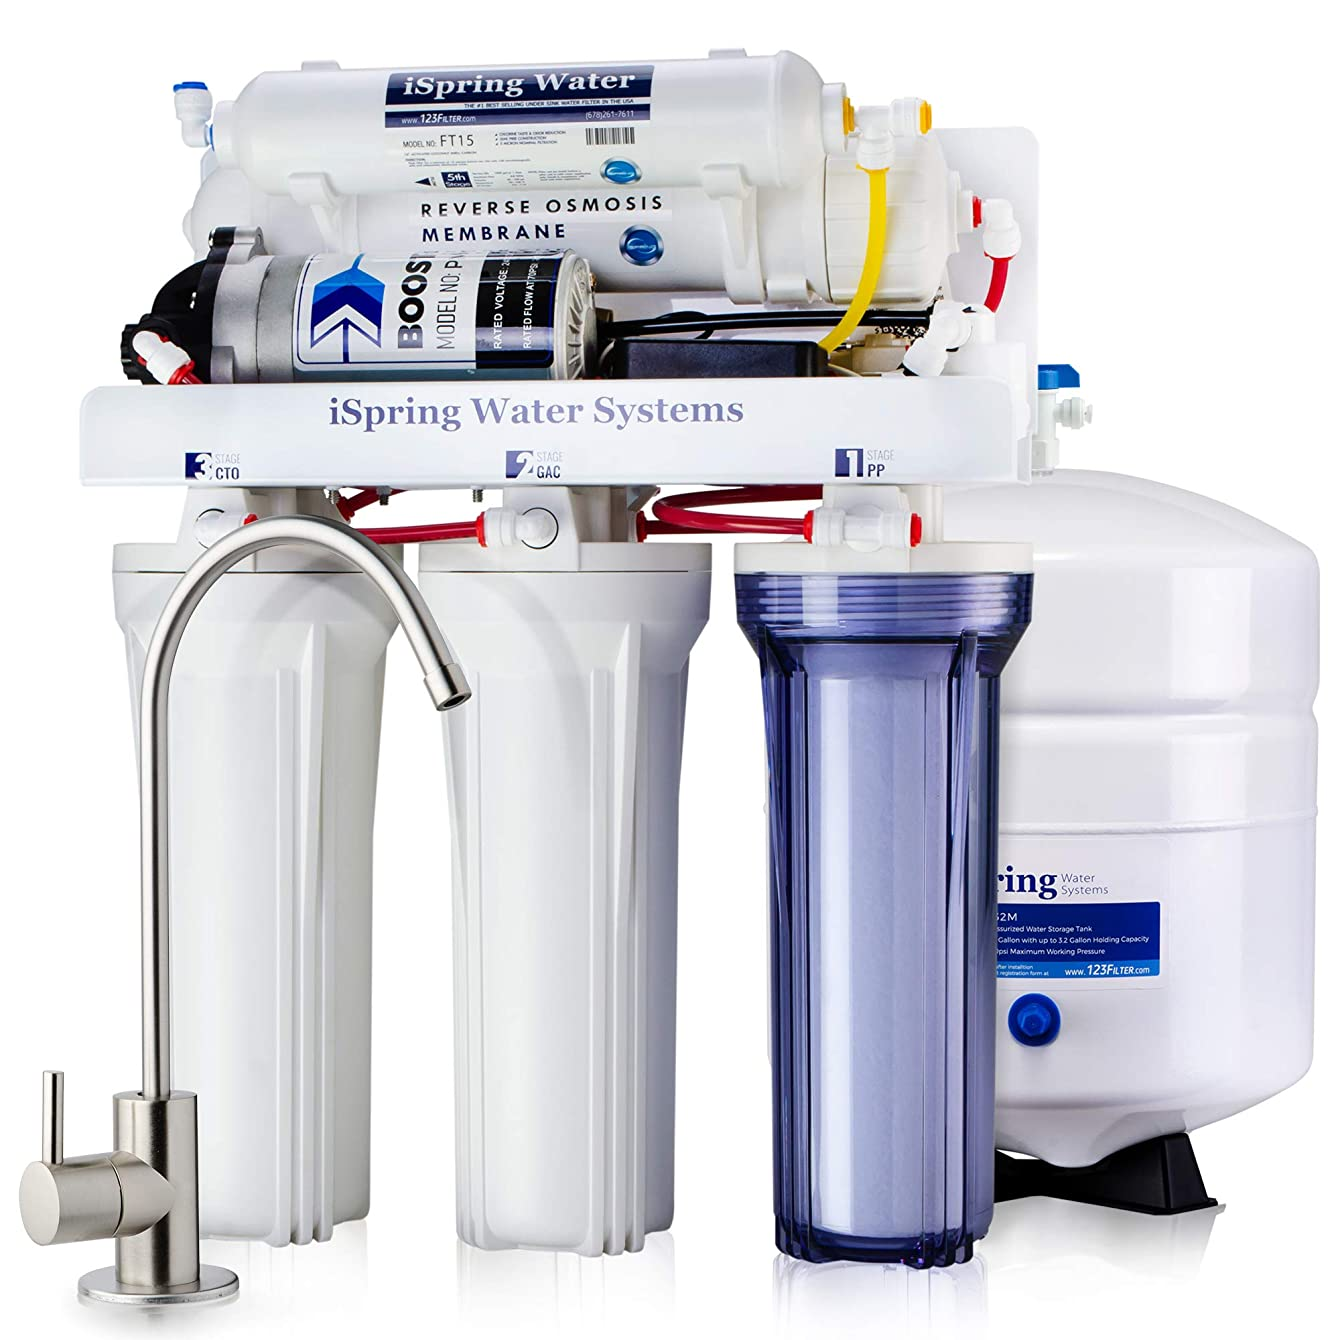 iSpring RCC100P High Capacity, Performance-boosted Under Sink 5-Stage Reverse Osmosis Drinking Water Filtration System, 100 GPD, White kplghvxwgppft46